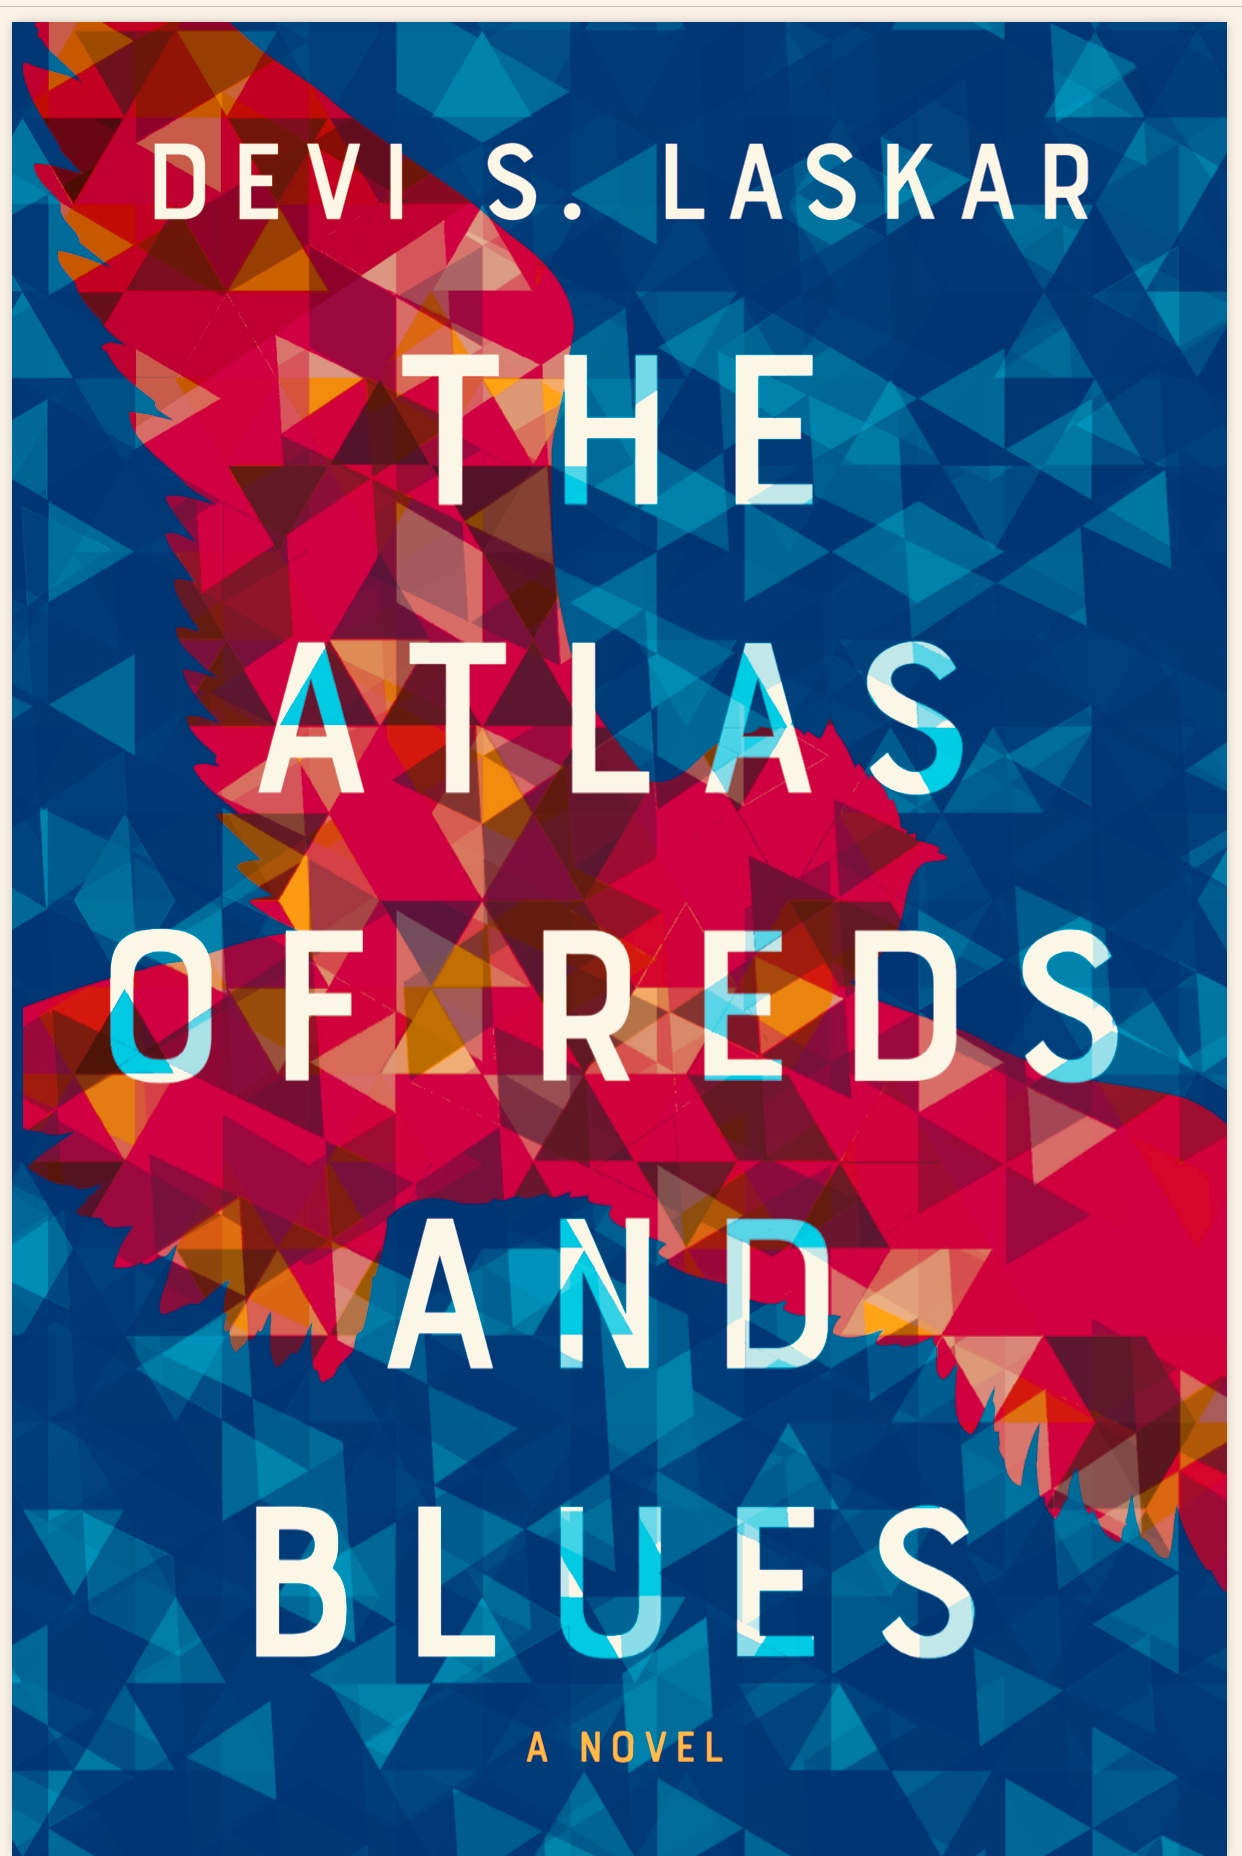 THE ATLAS OF REDS AND BLUES - Devi Laskar